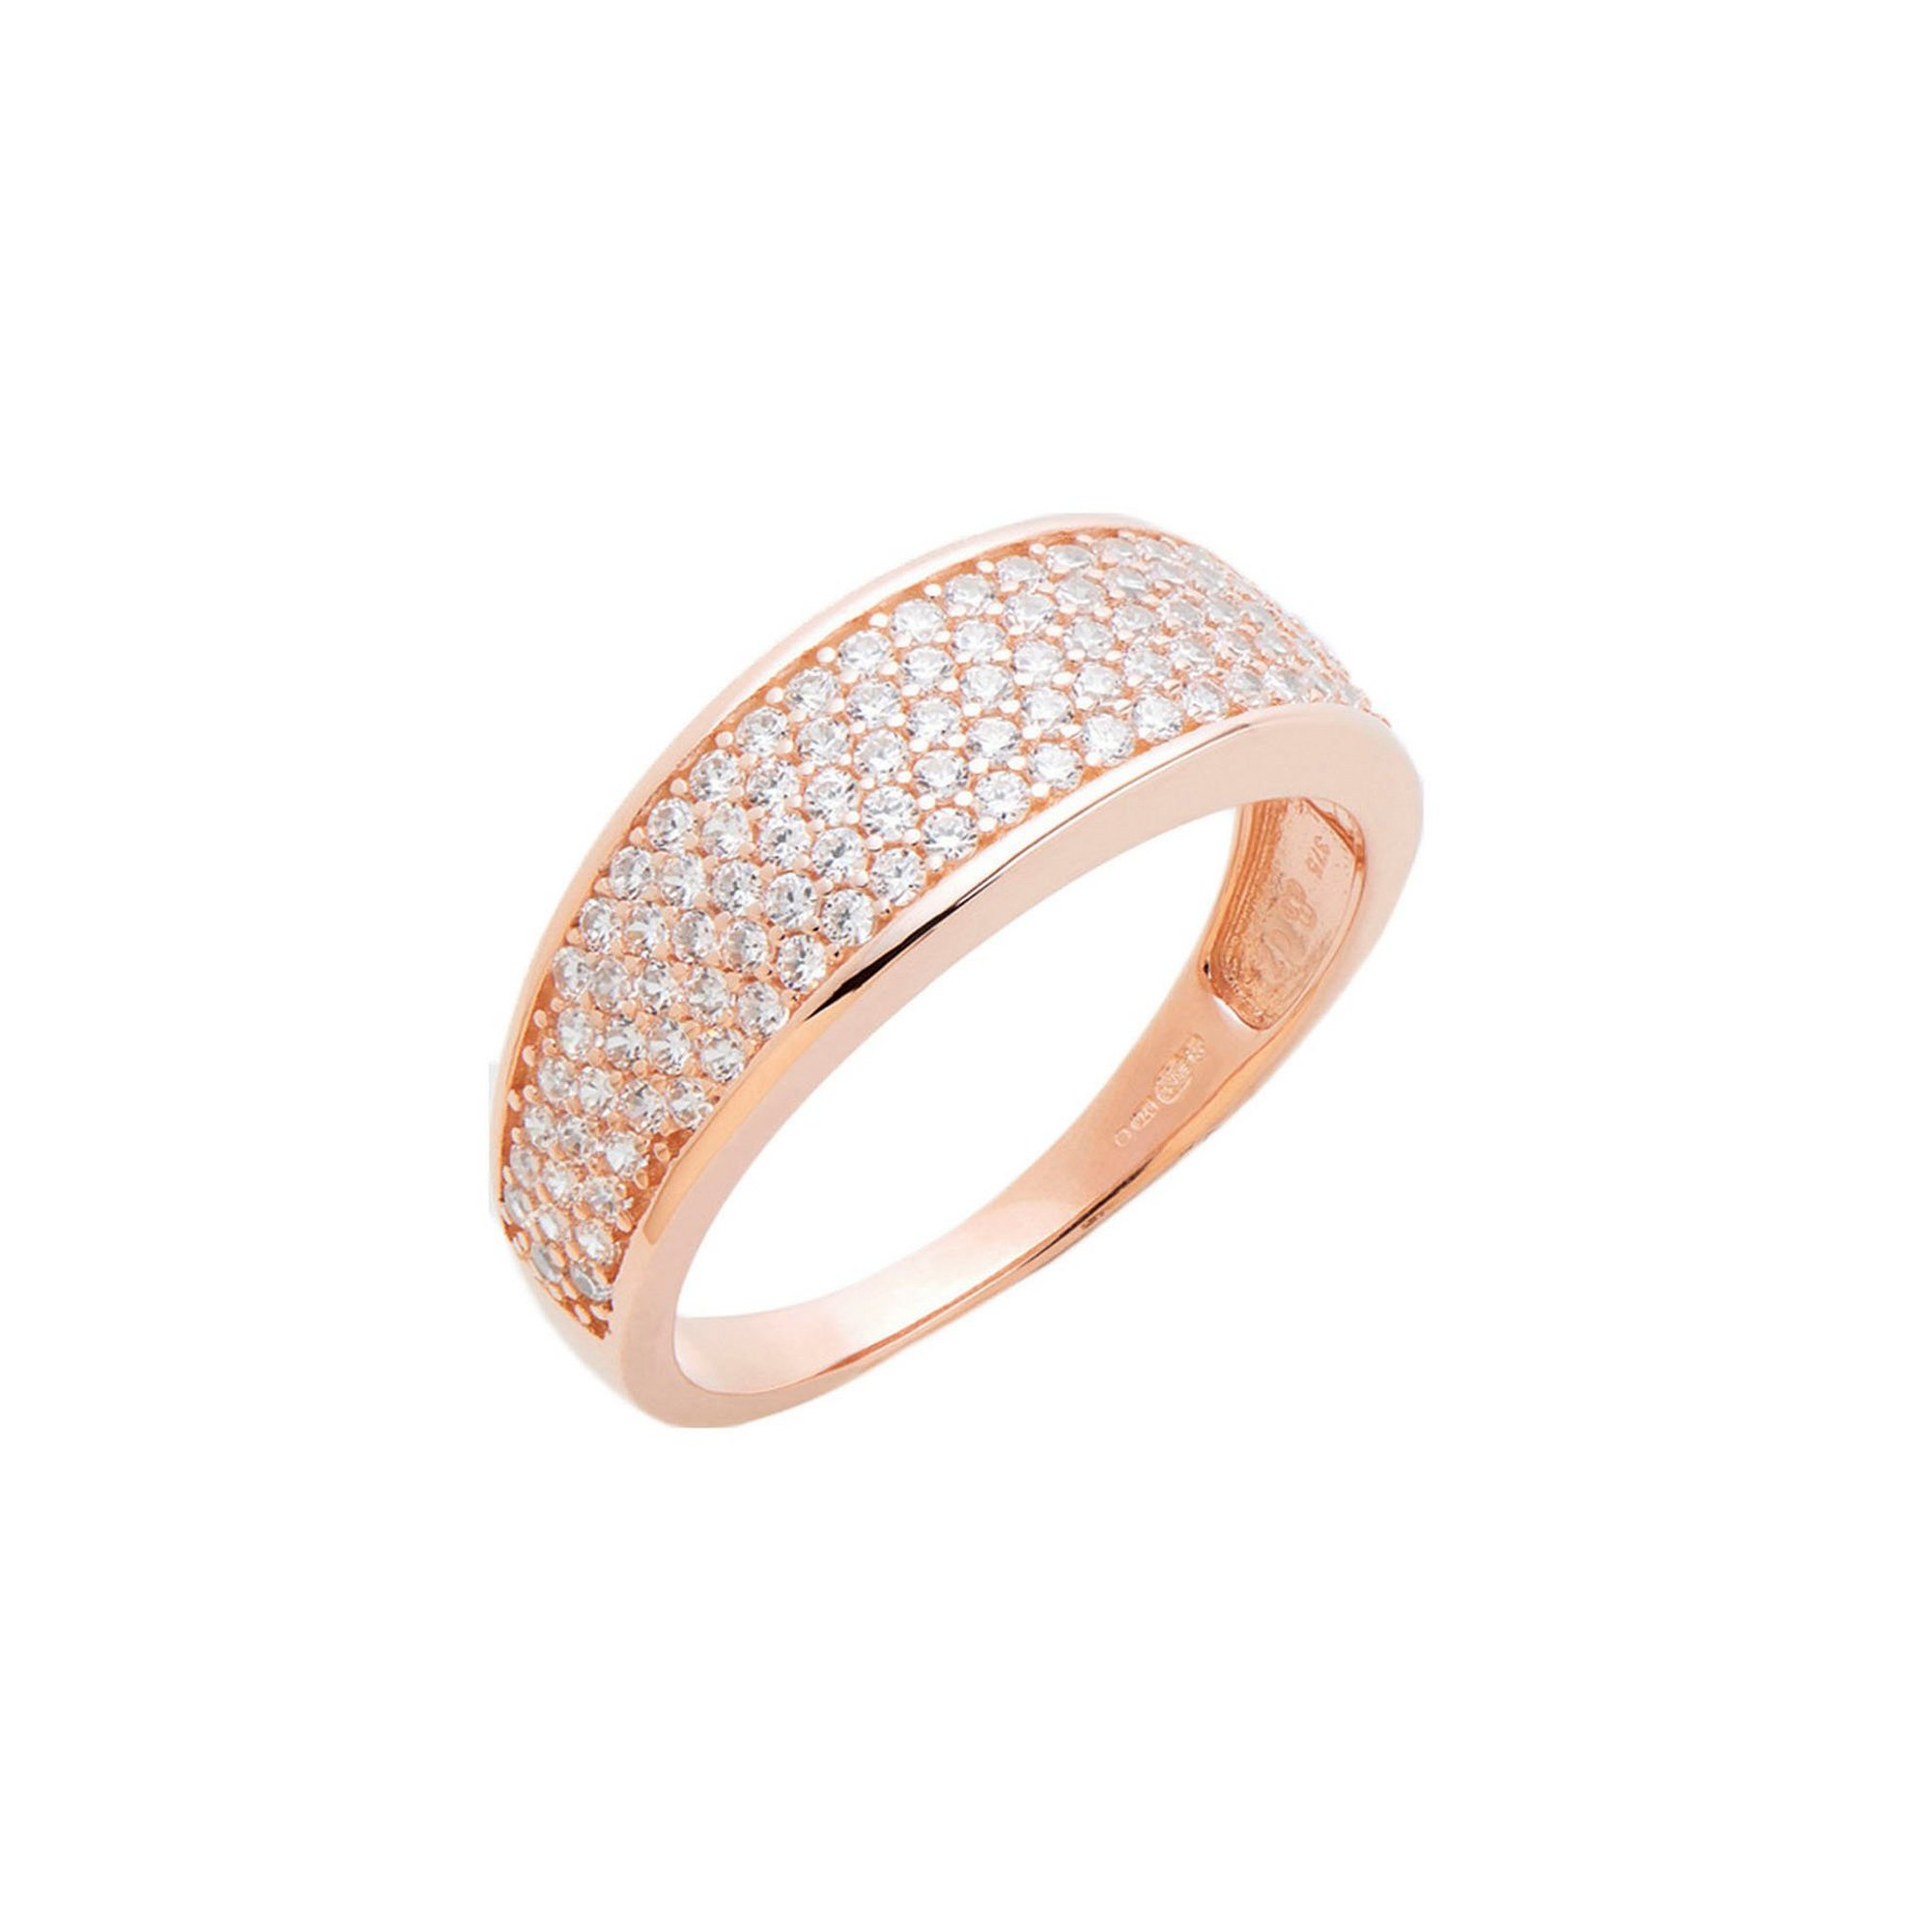 Image of 9ct Gold CZ Pave Set Tapered Ring